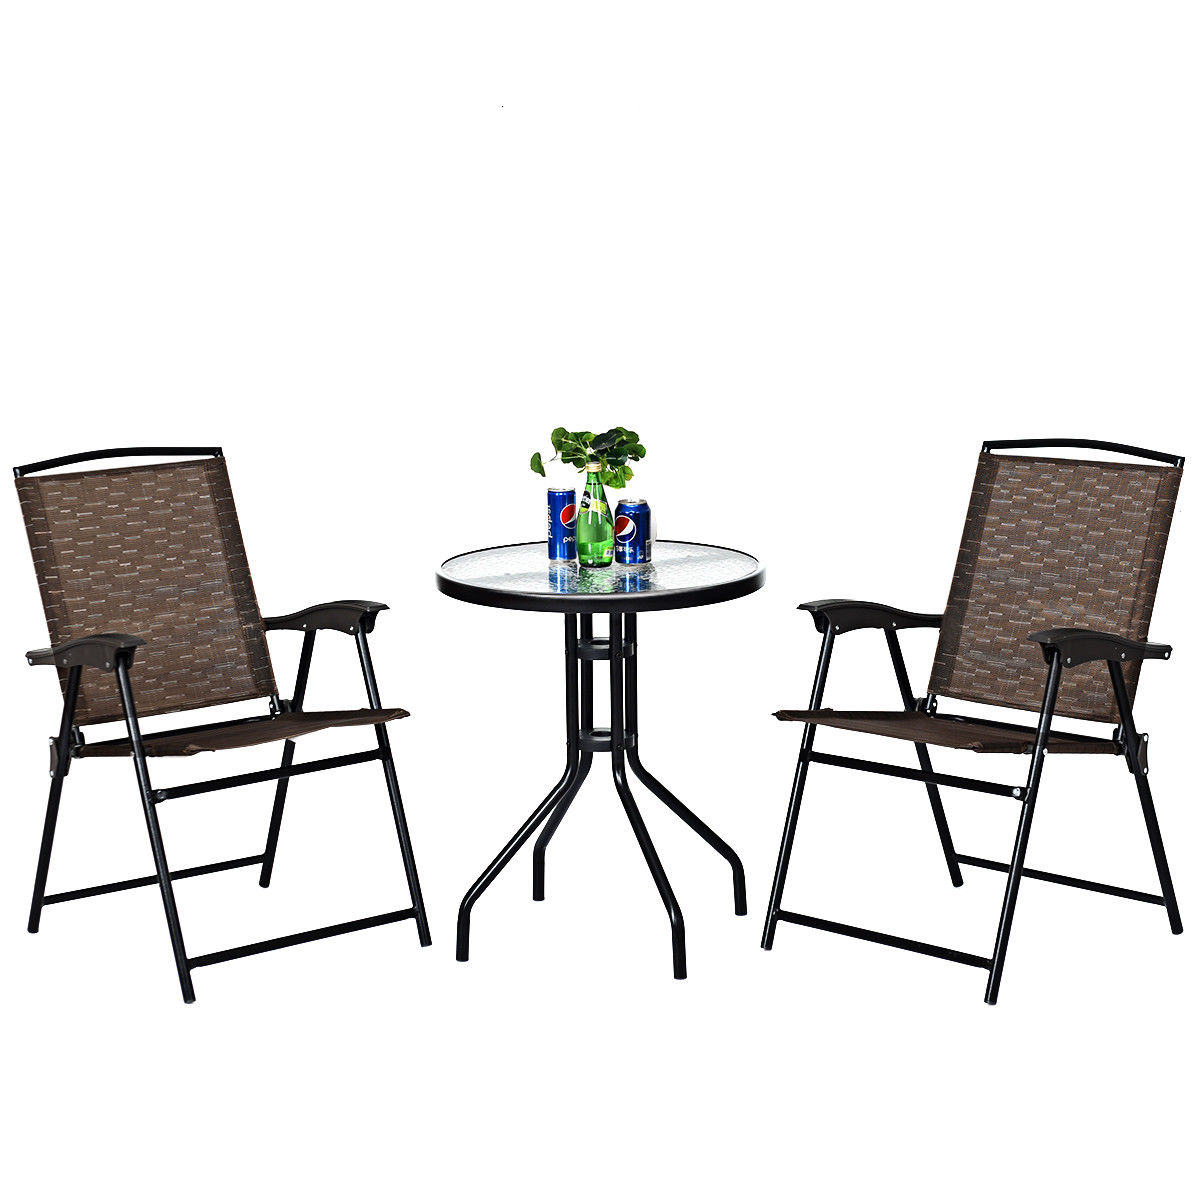 Costway 3pc Bistro Patio Garden Furniture Set 2 Folding Chairs Glass Table Top Steel Aliexpress